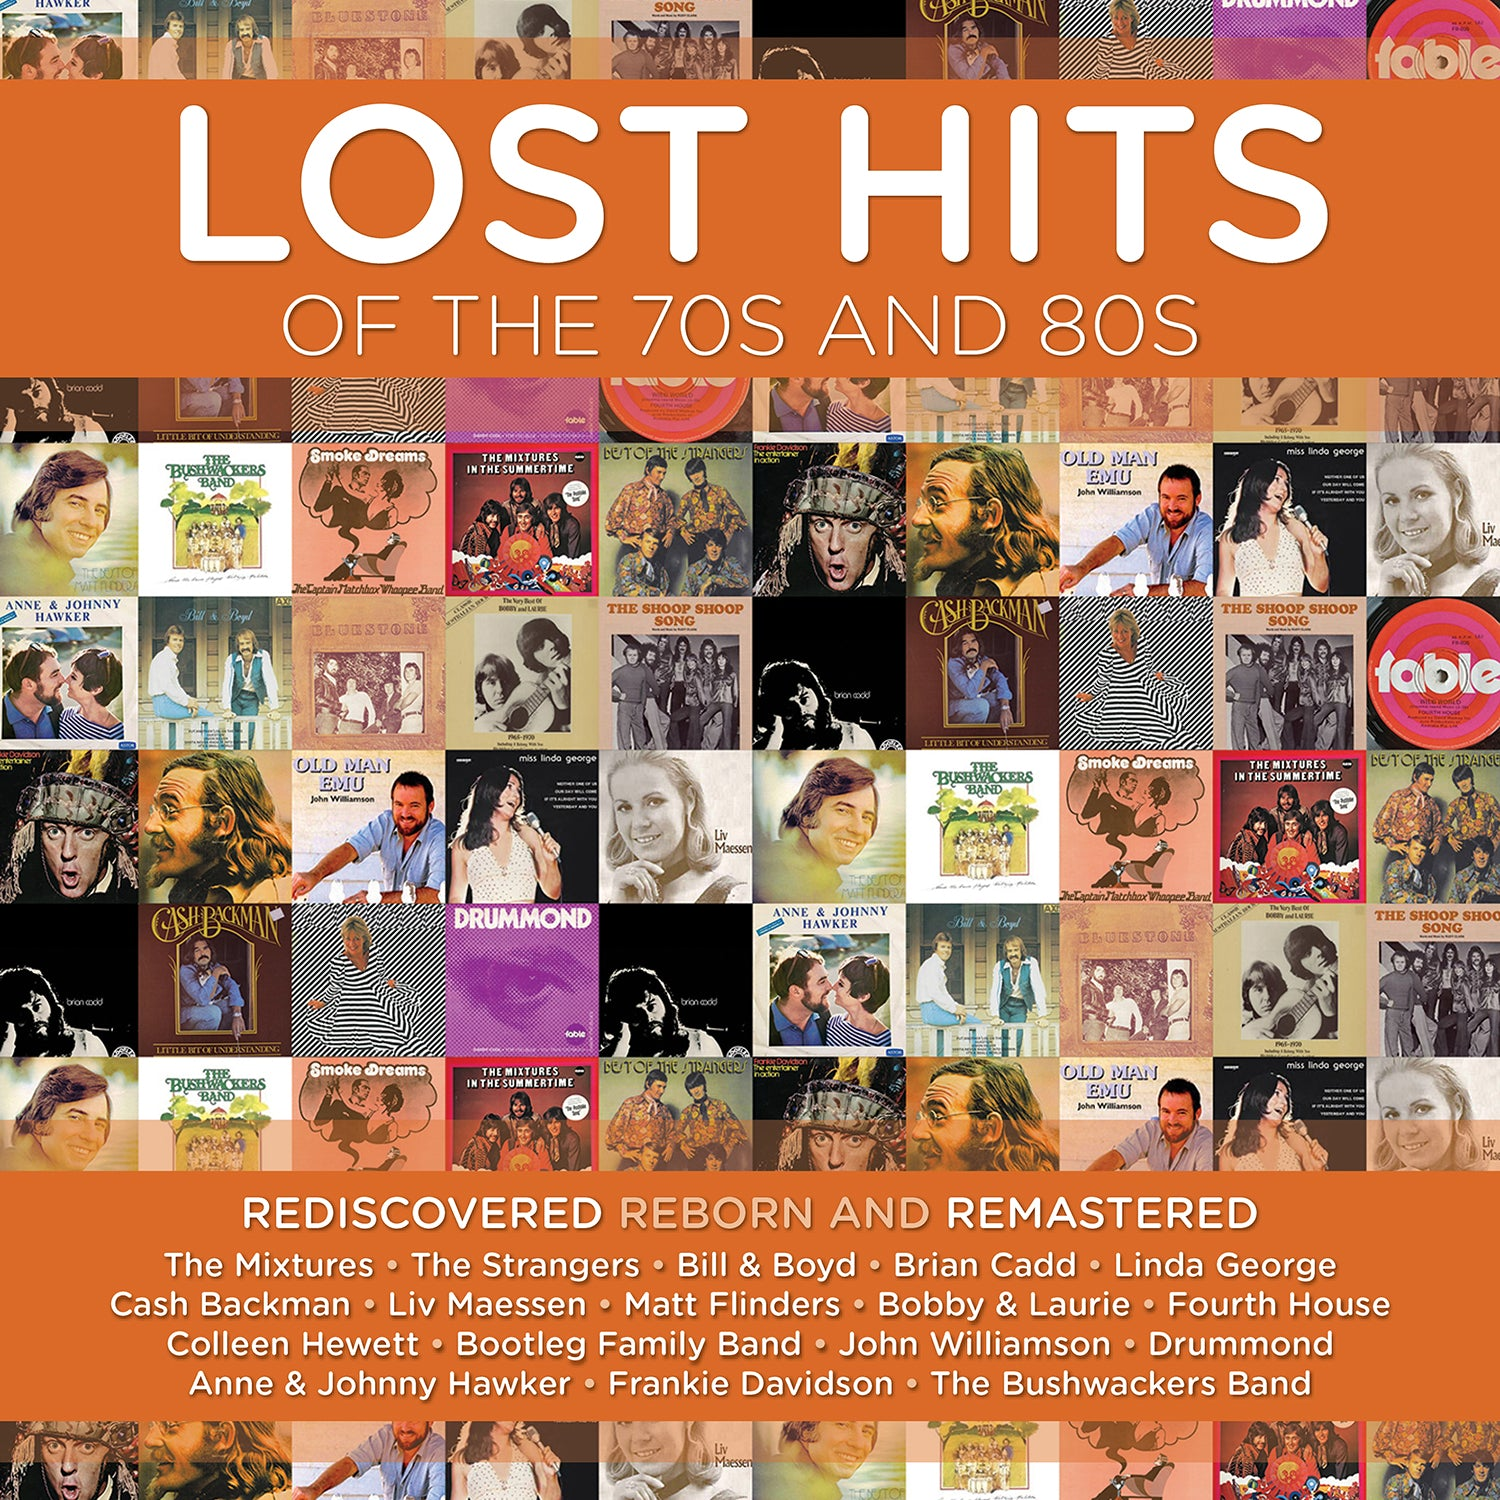 FANFARE318 - VARIOUS ARTISTS - LOST HITS